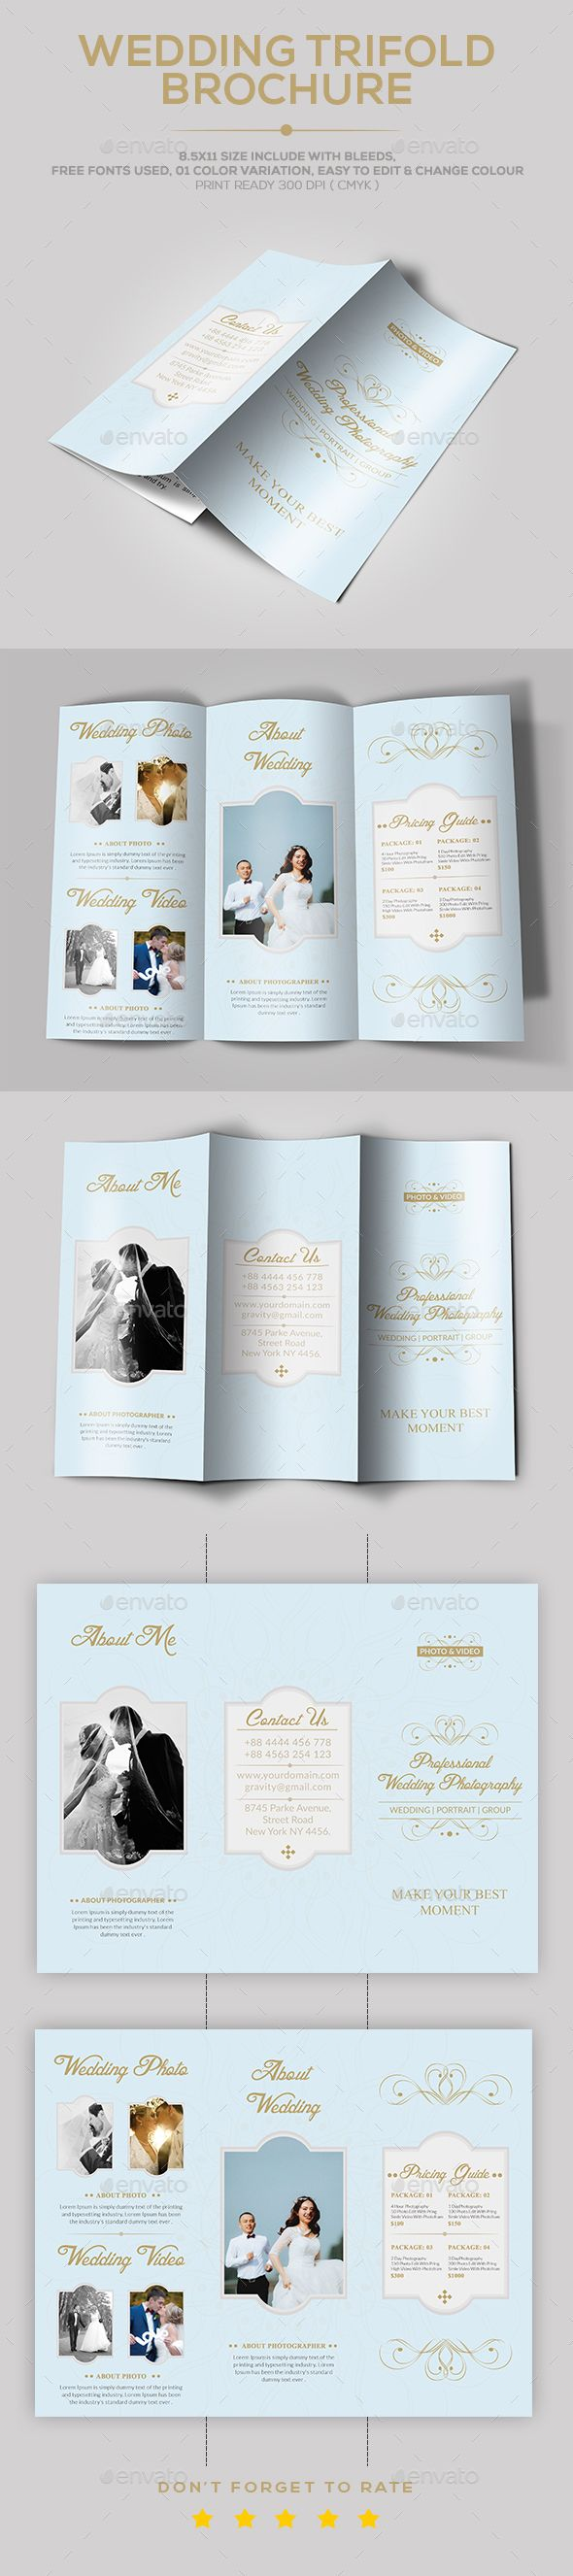 Wedding Brochure template | Pinterest | Brochure template, Brochures ...